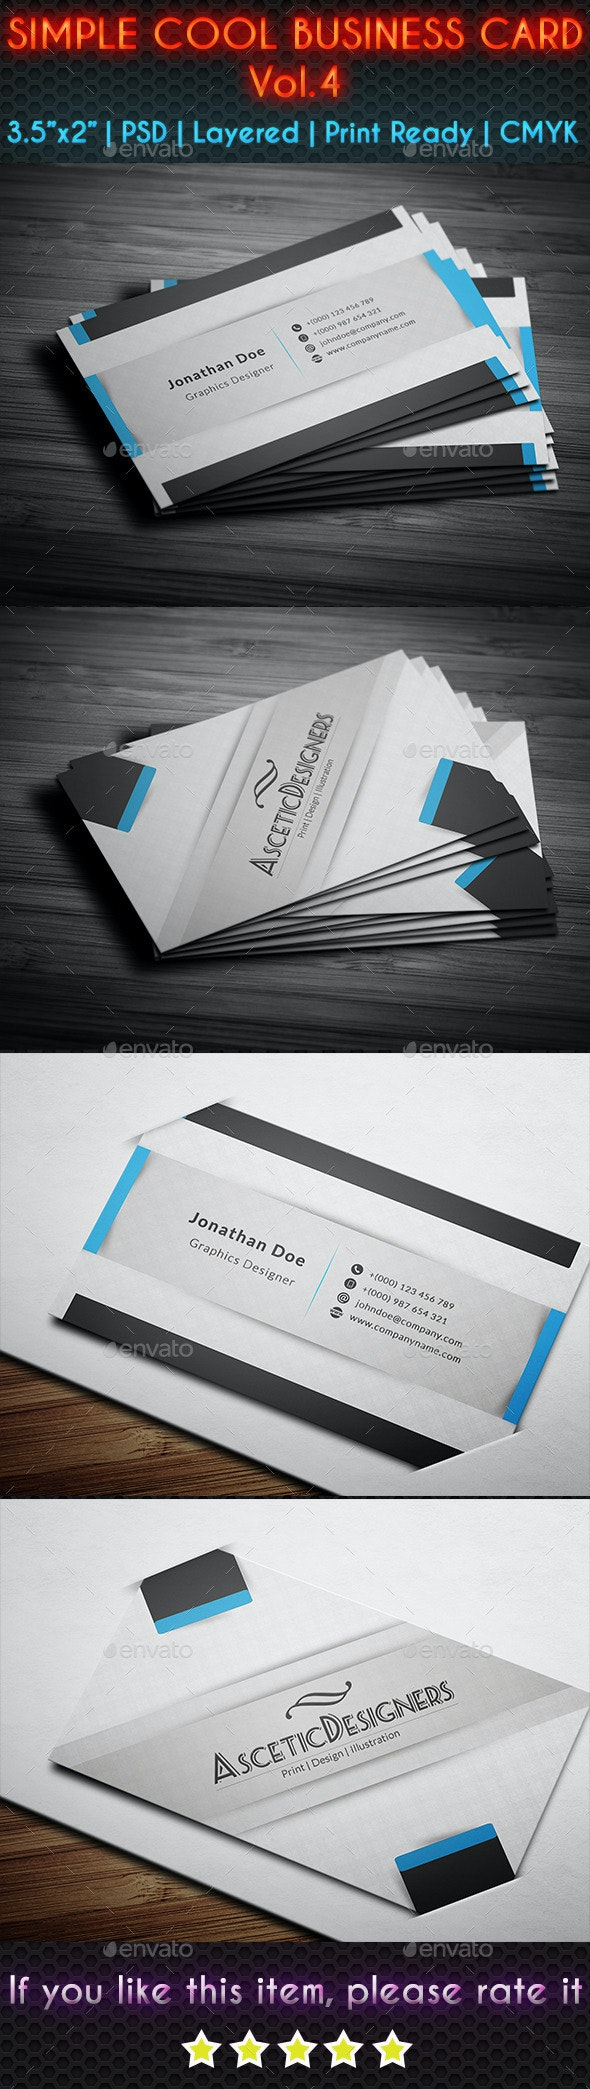 Simple Cool Business Card Vol.4 - Creative Business Cards